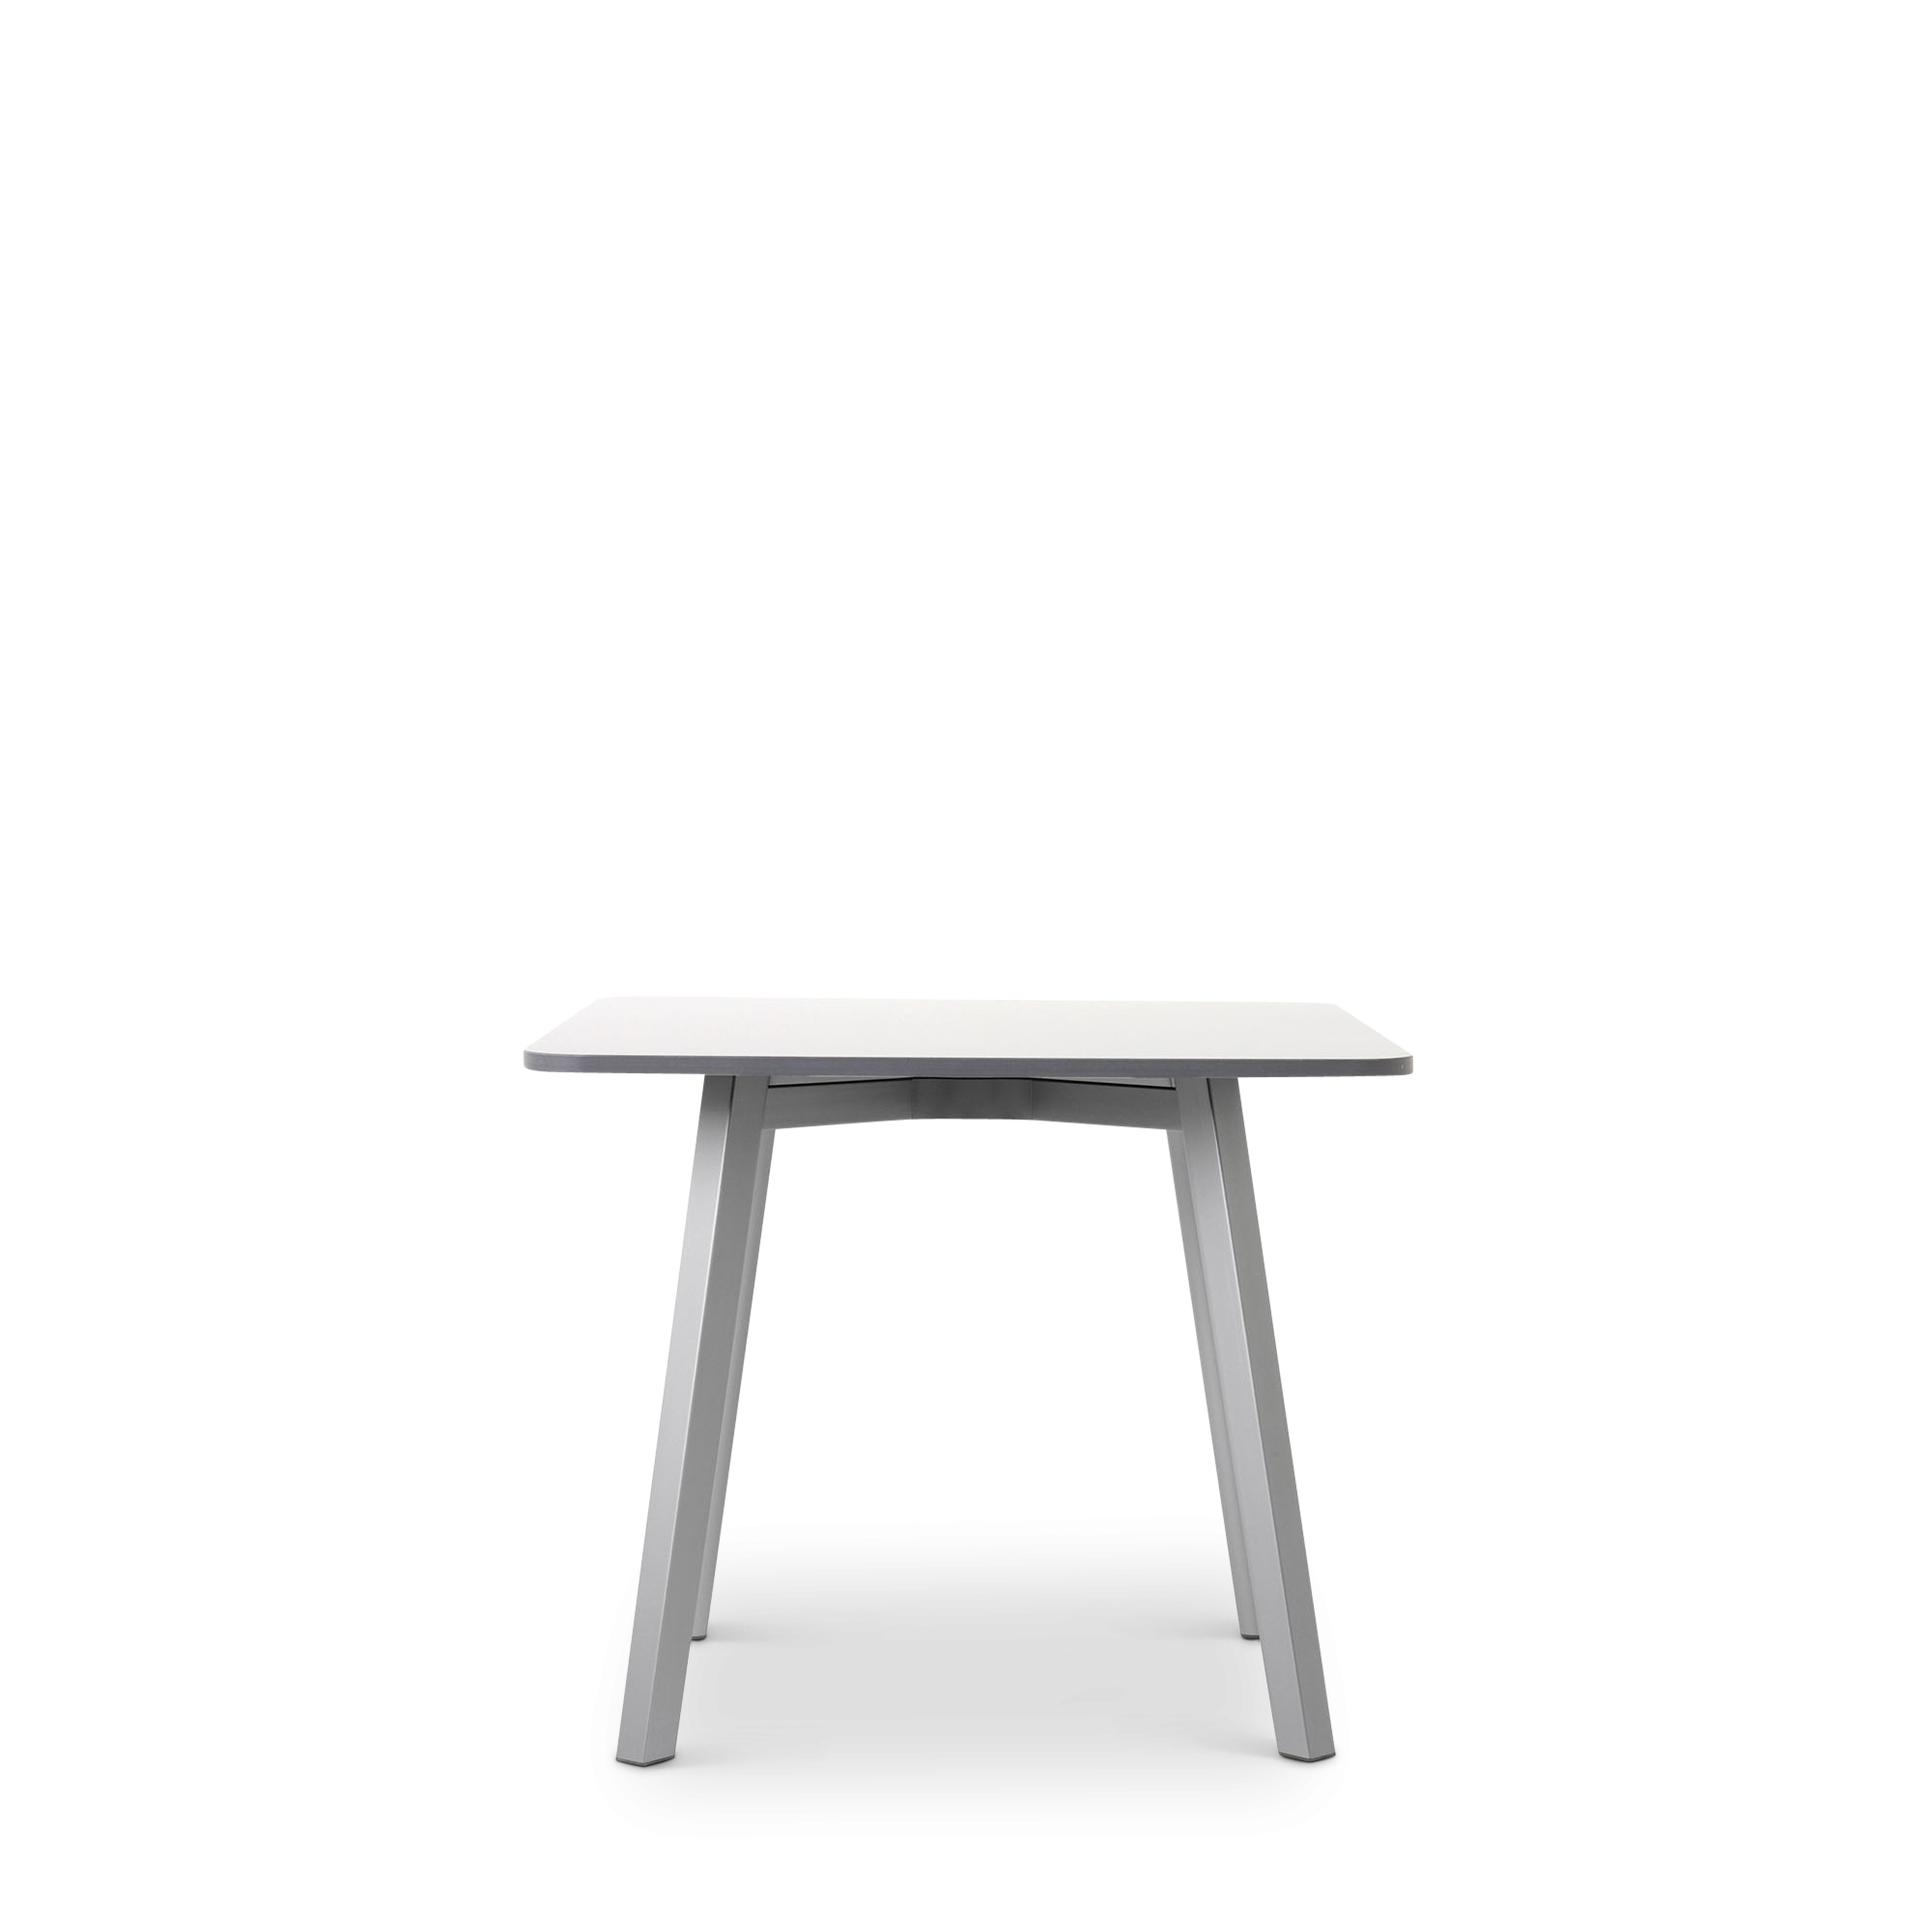 su-low-table-21-6-white-top